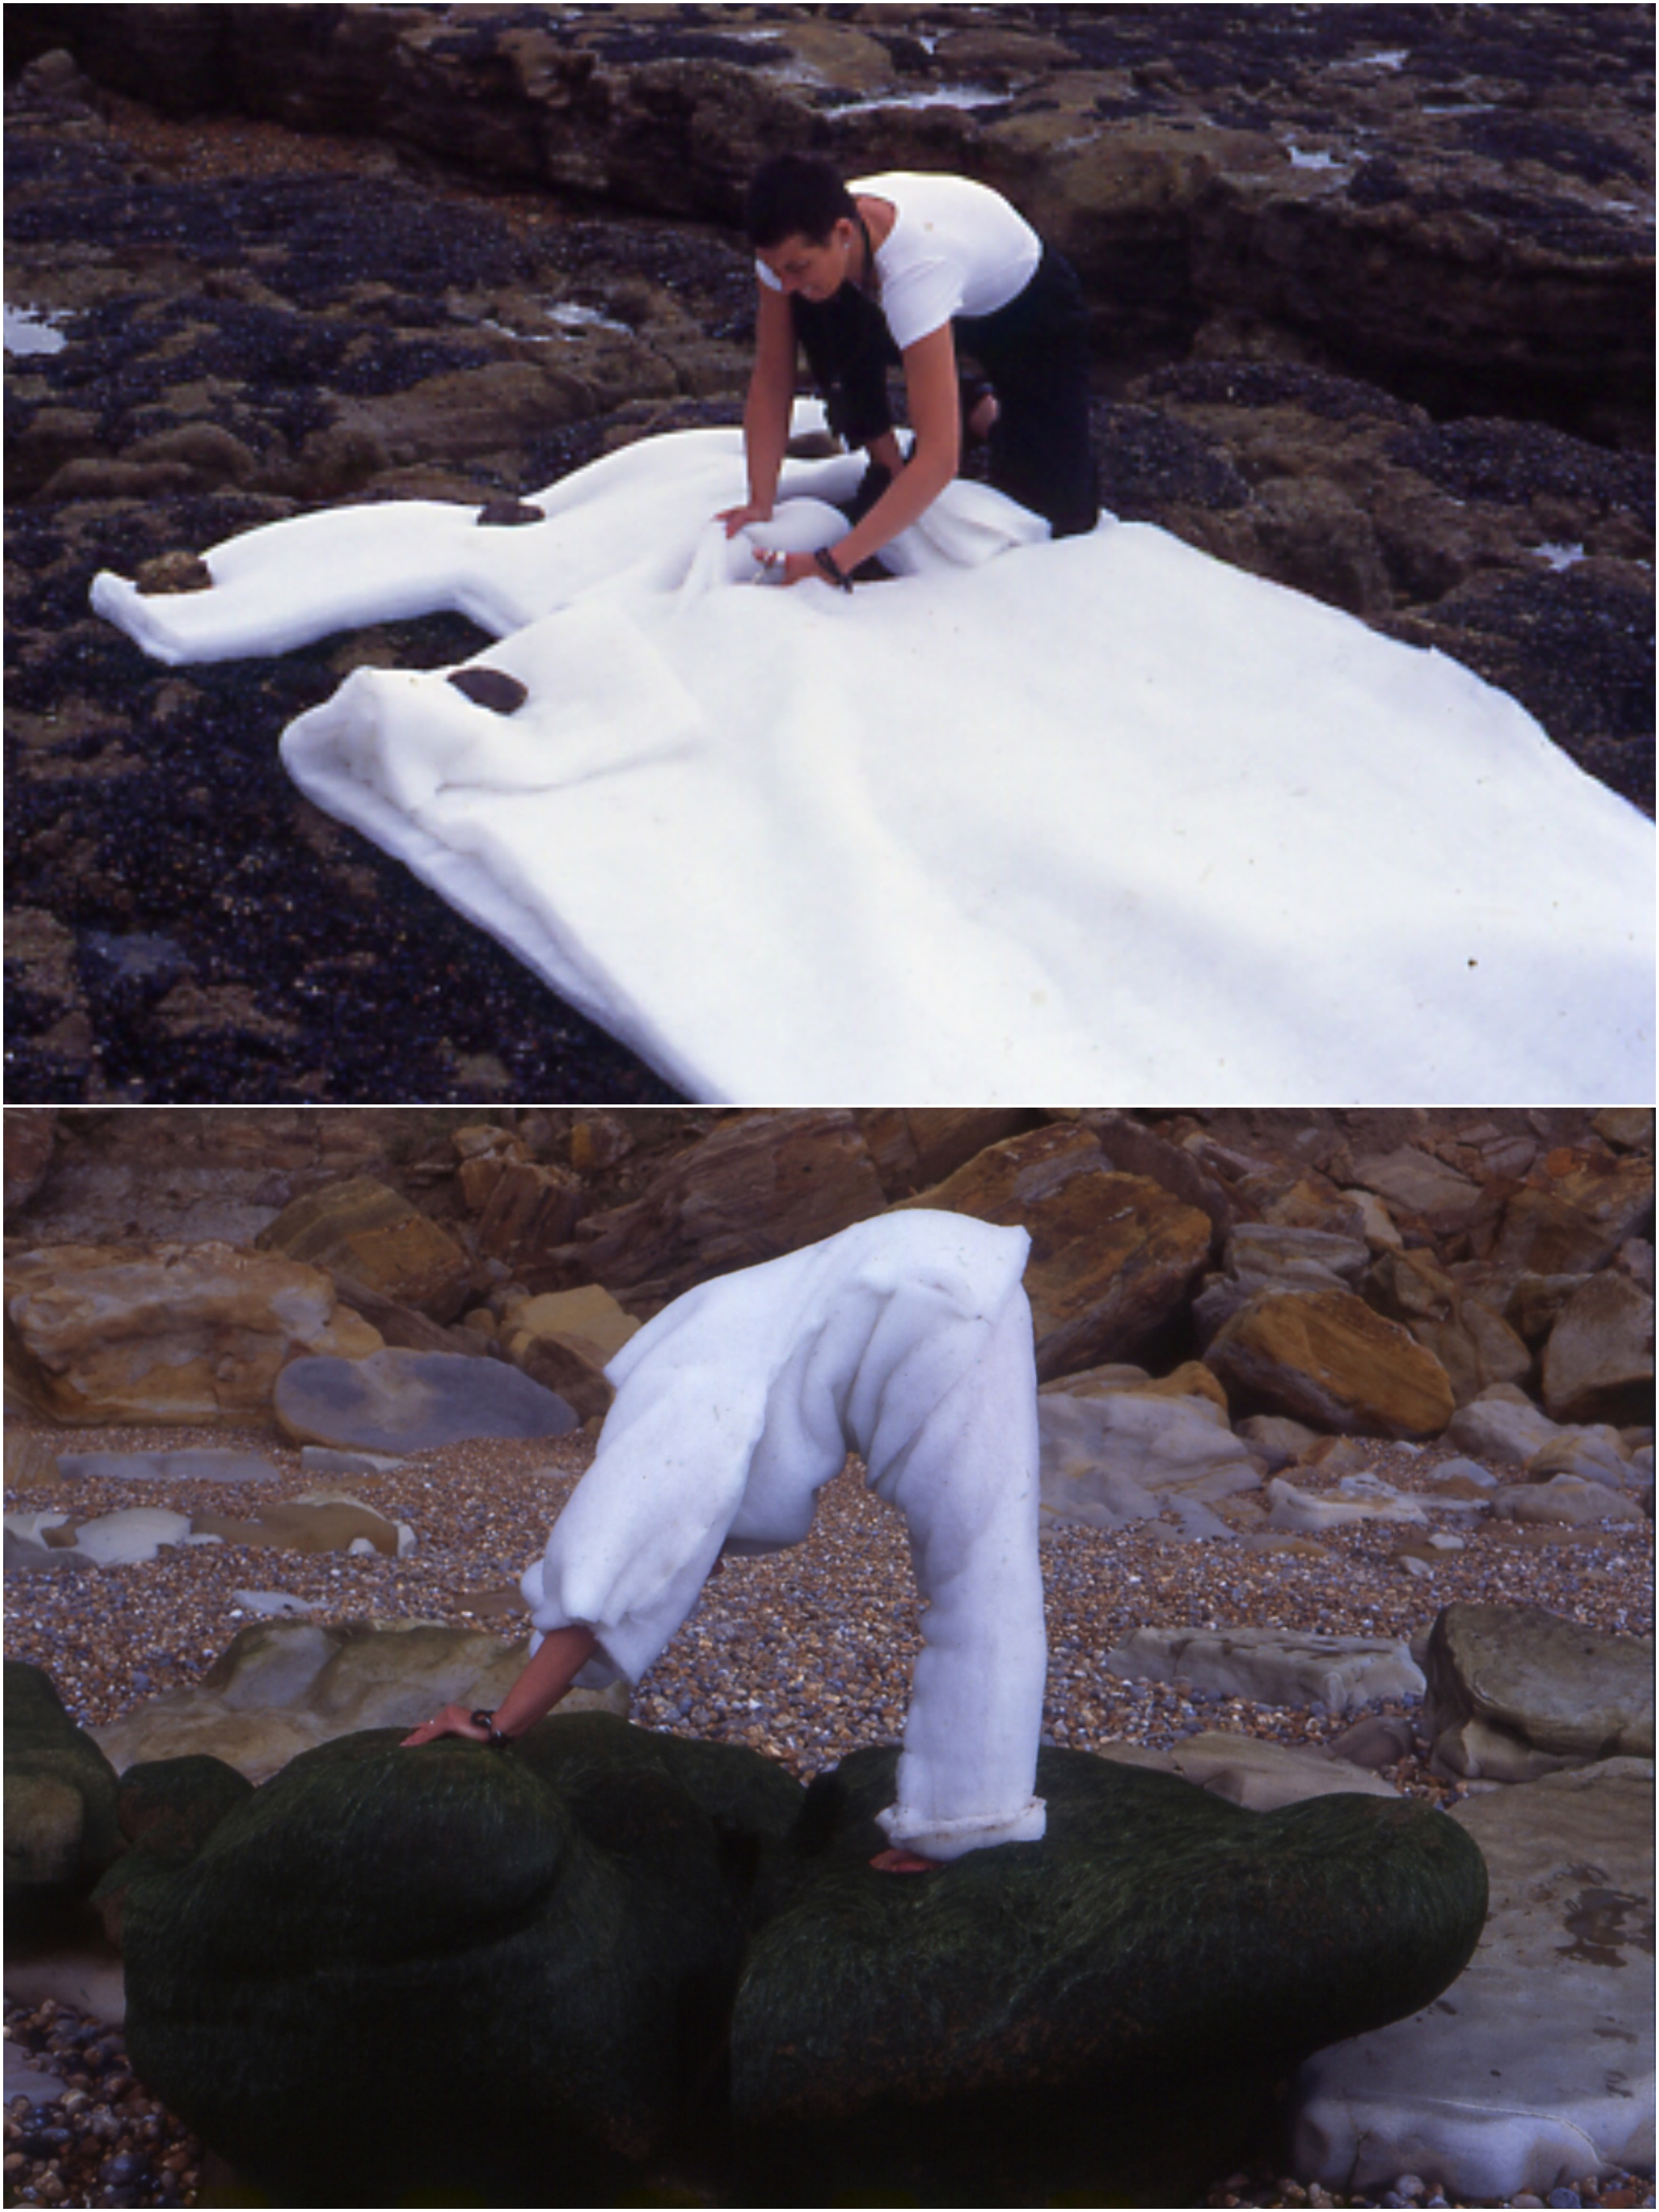 the Making of white suit, Hastings 1999, exhibited at  BBK Braunschweig Torhaus, photographic prints 84 x 59